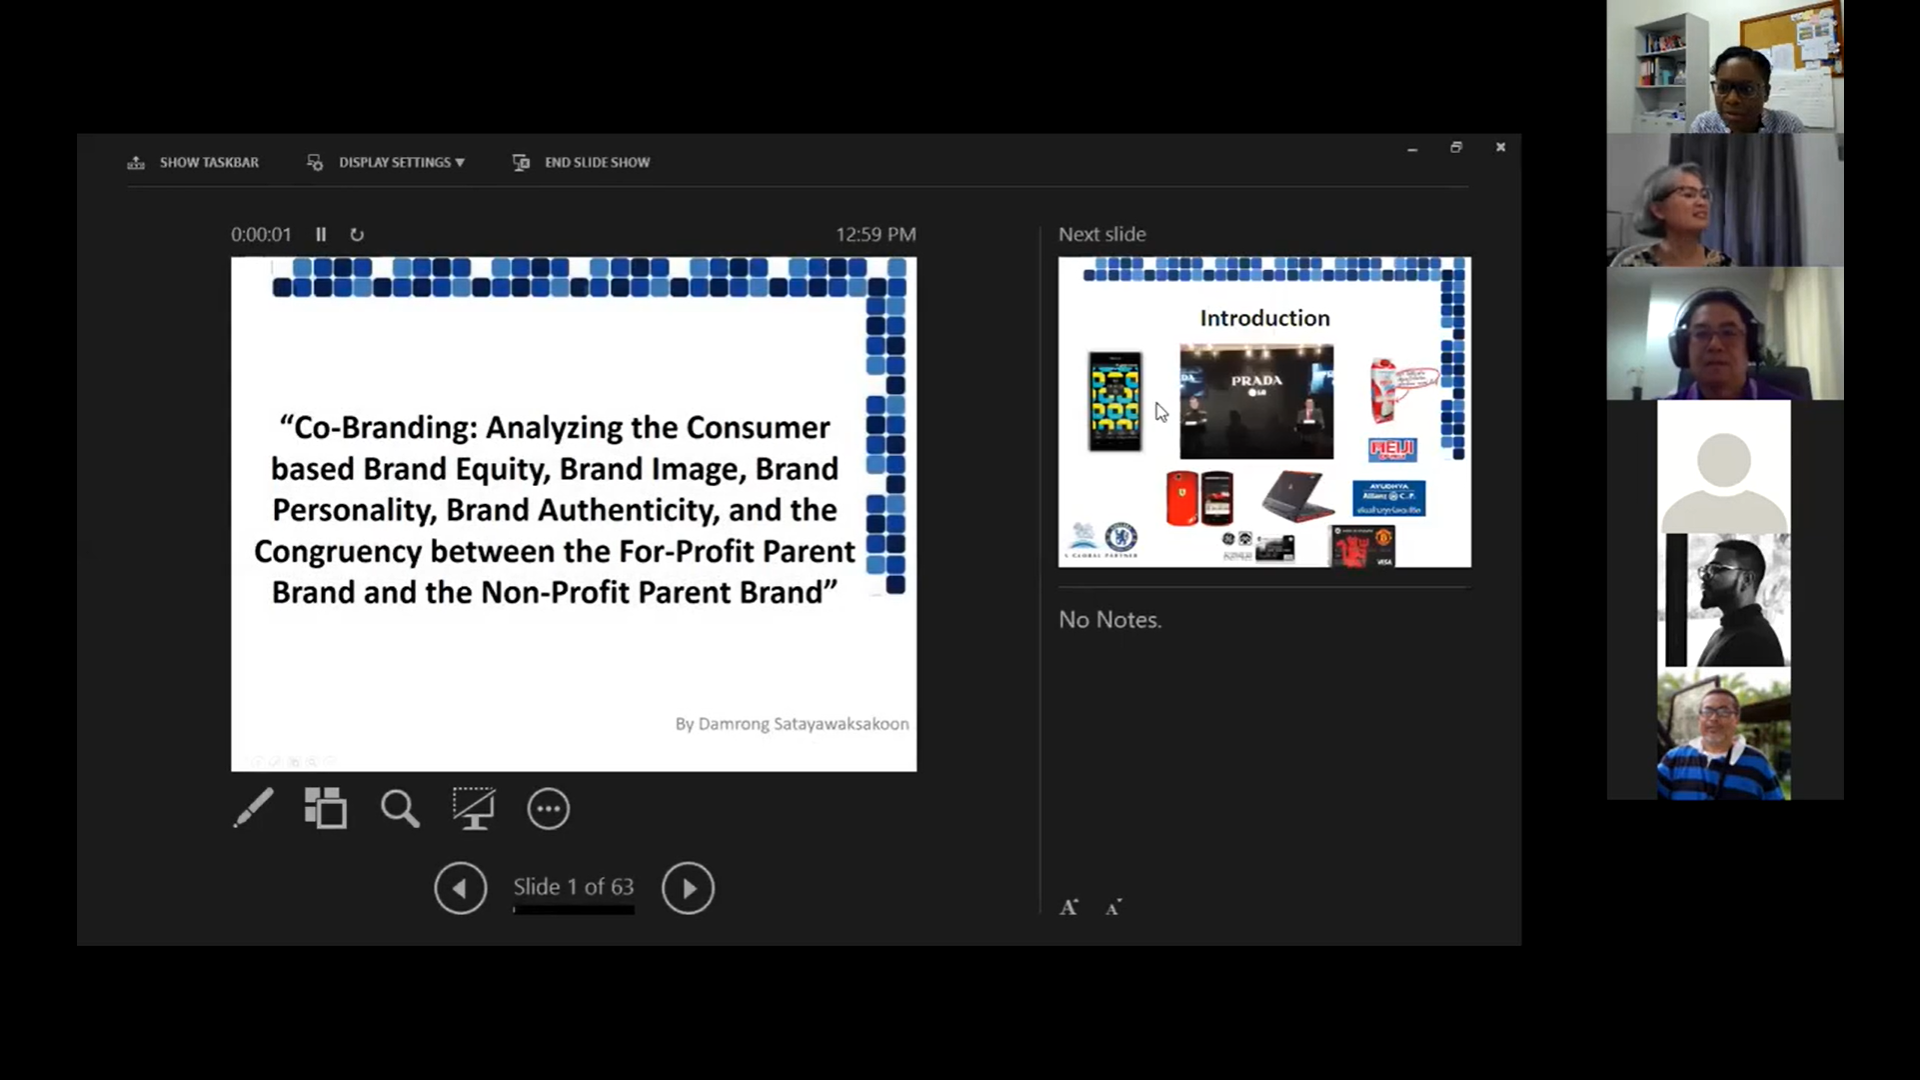 Co-branding: Analyzing the Consumer-based Brand Equity, Brand Image, Brand Personality, Brand Authenticity, and the Congruency between the For-Profit Parent Brand and the Non-Profit Parent Brand